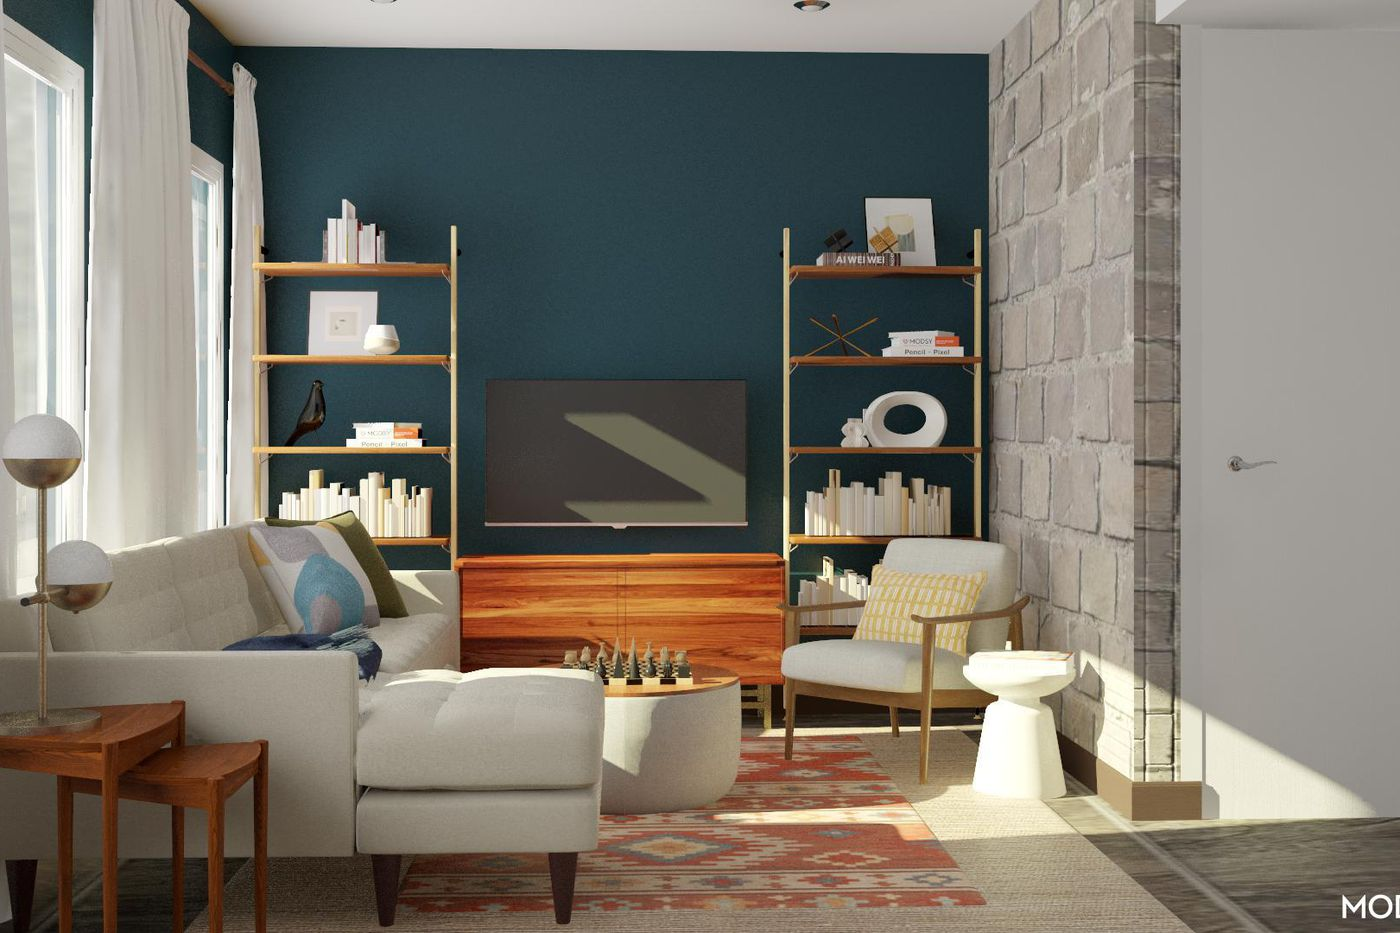 Interior Design Services – Things To Know